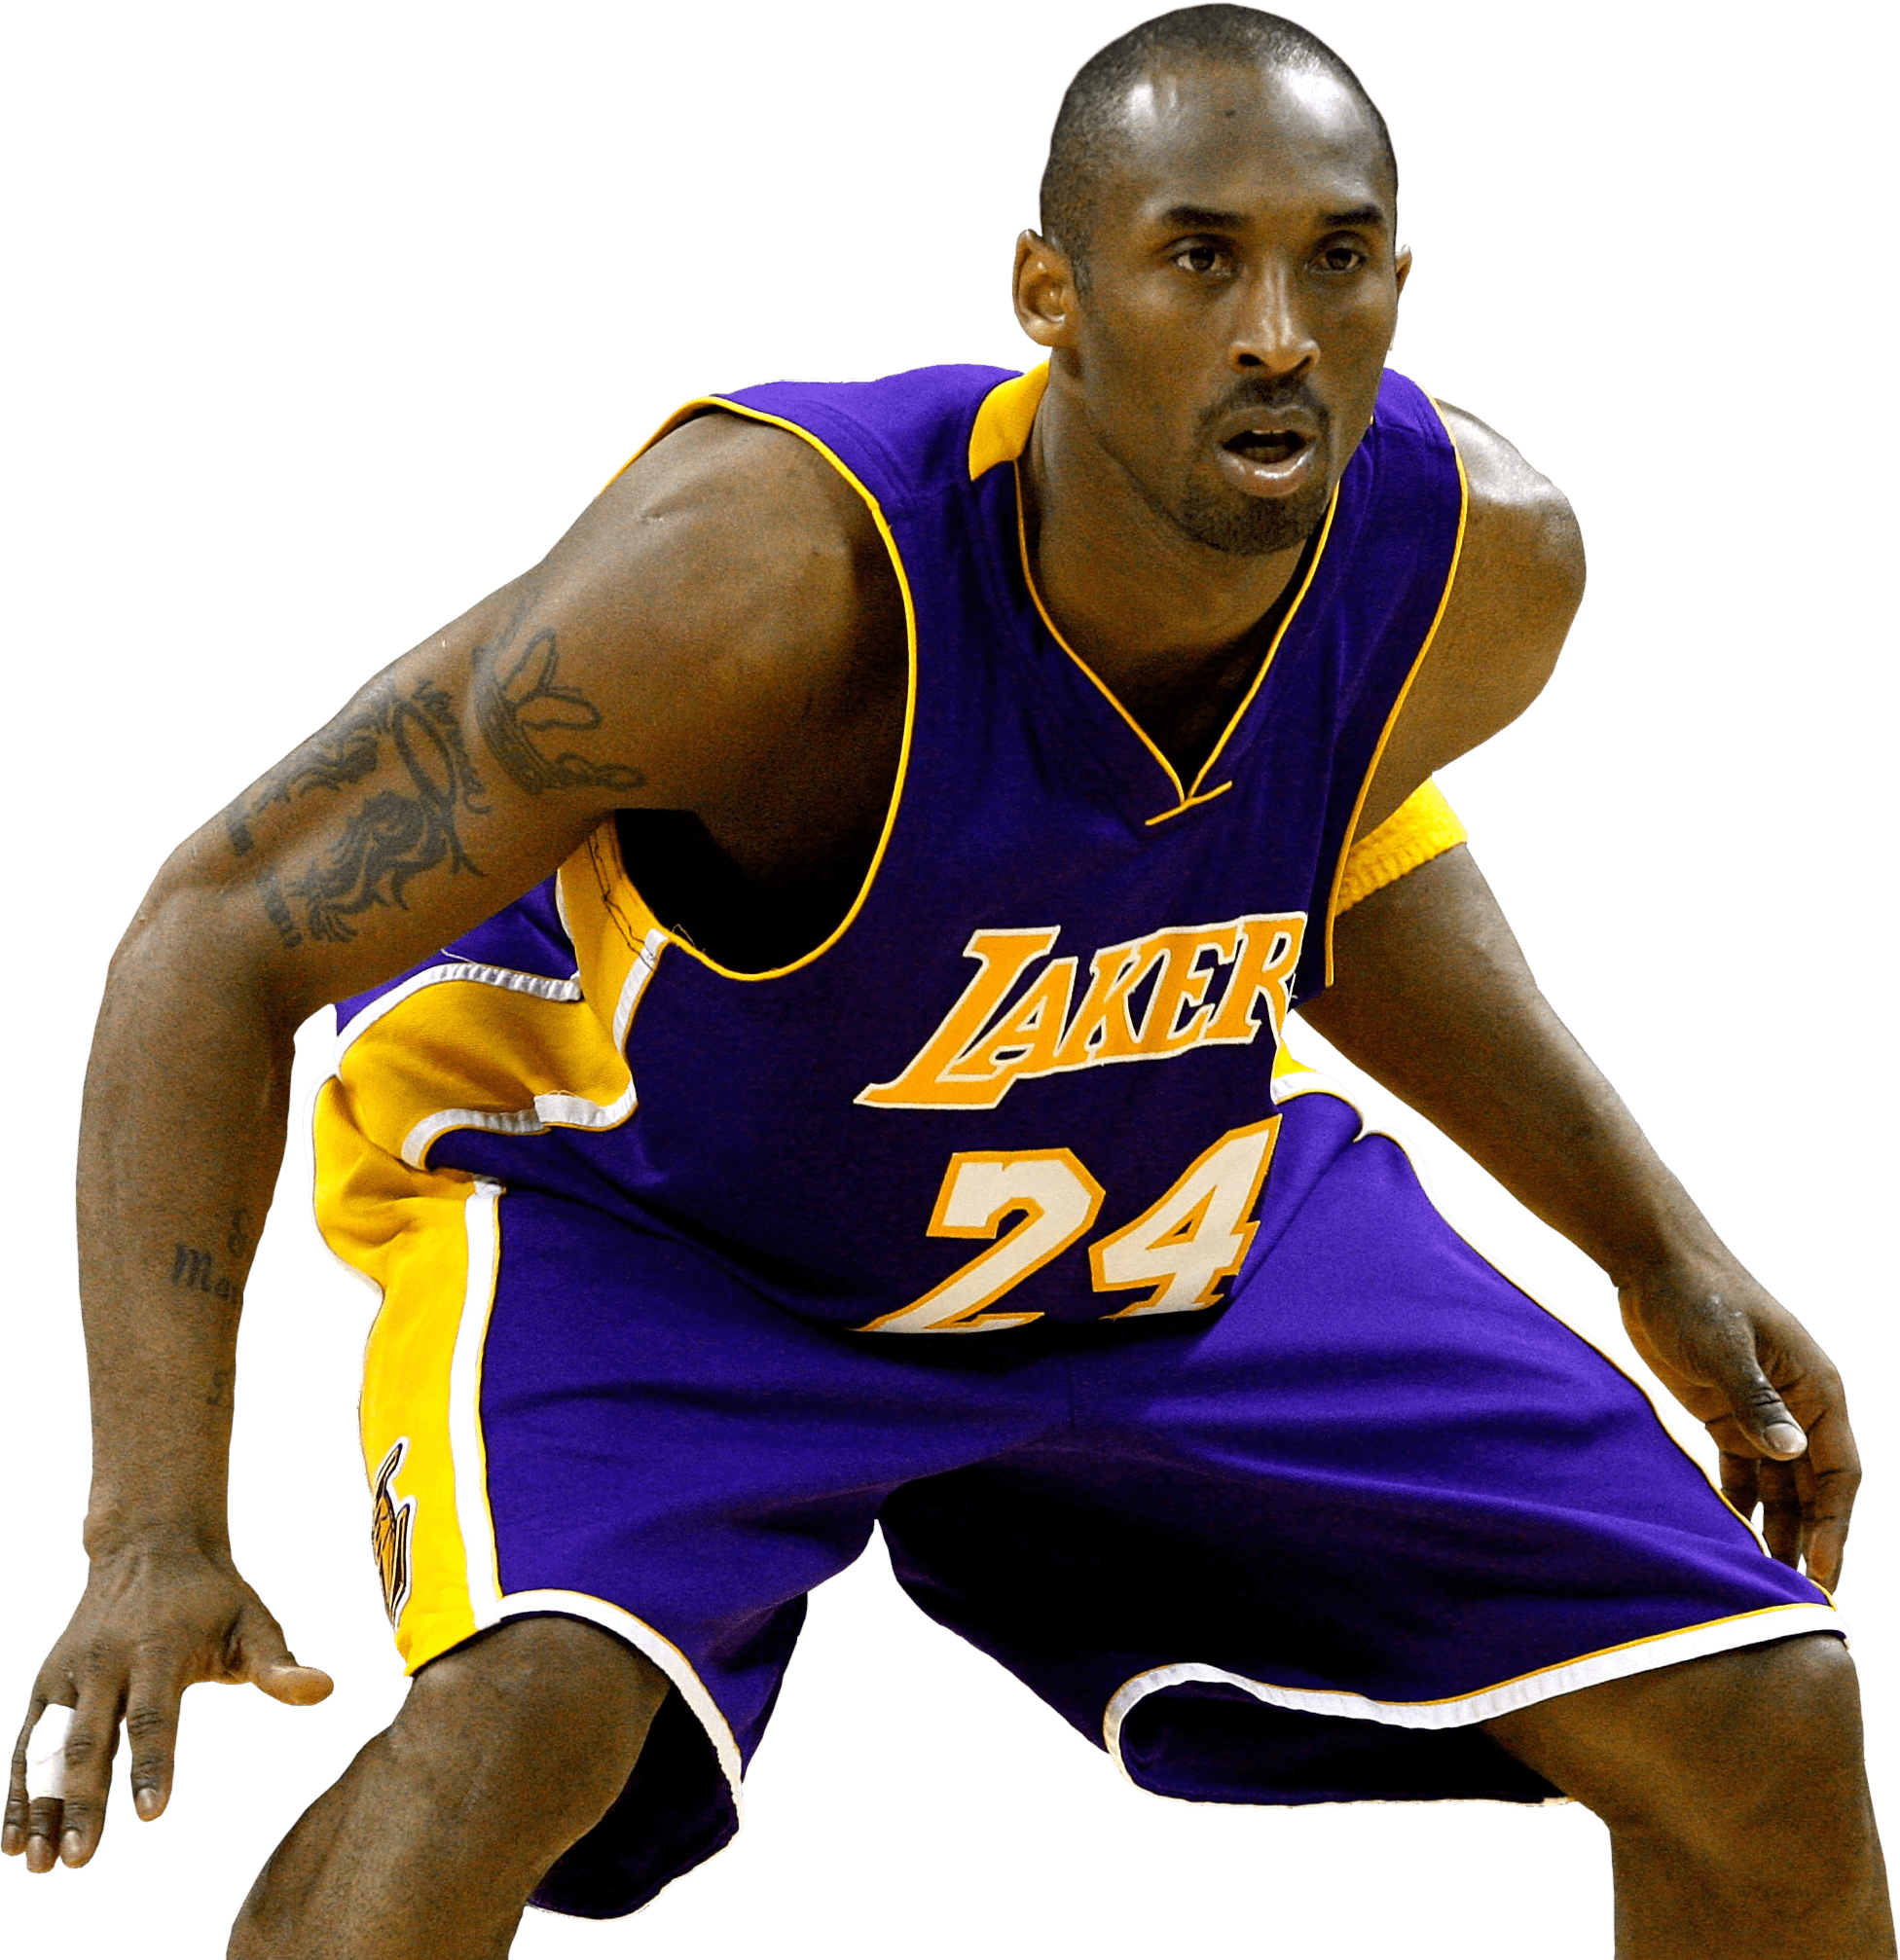 Kobe transparent. Bryant defense png stickpng